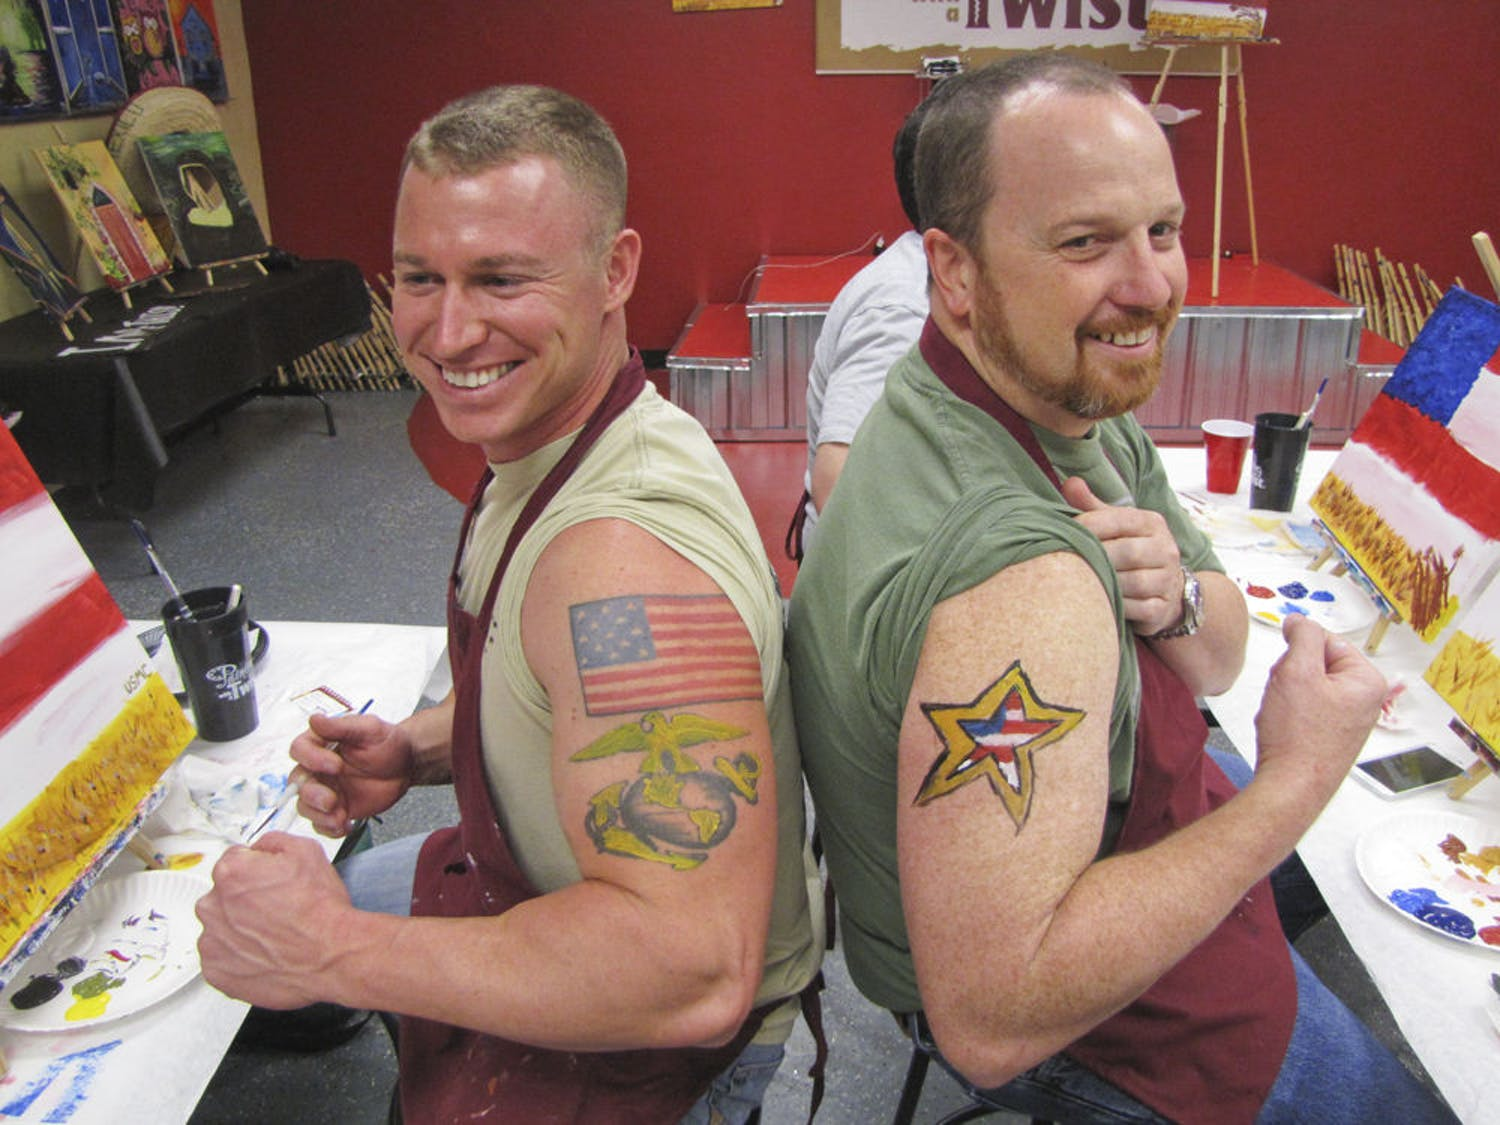 Marine Corps veteran Jacob Dodd, 29, and Army veteran Greg Revels, 43, pose with their painted tattoos Tuesday afternoon at Painting with a Twist's Veterans Day event.